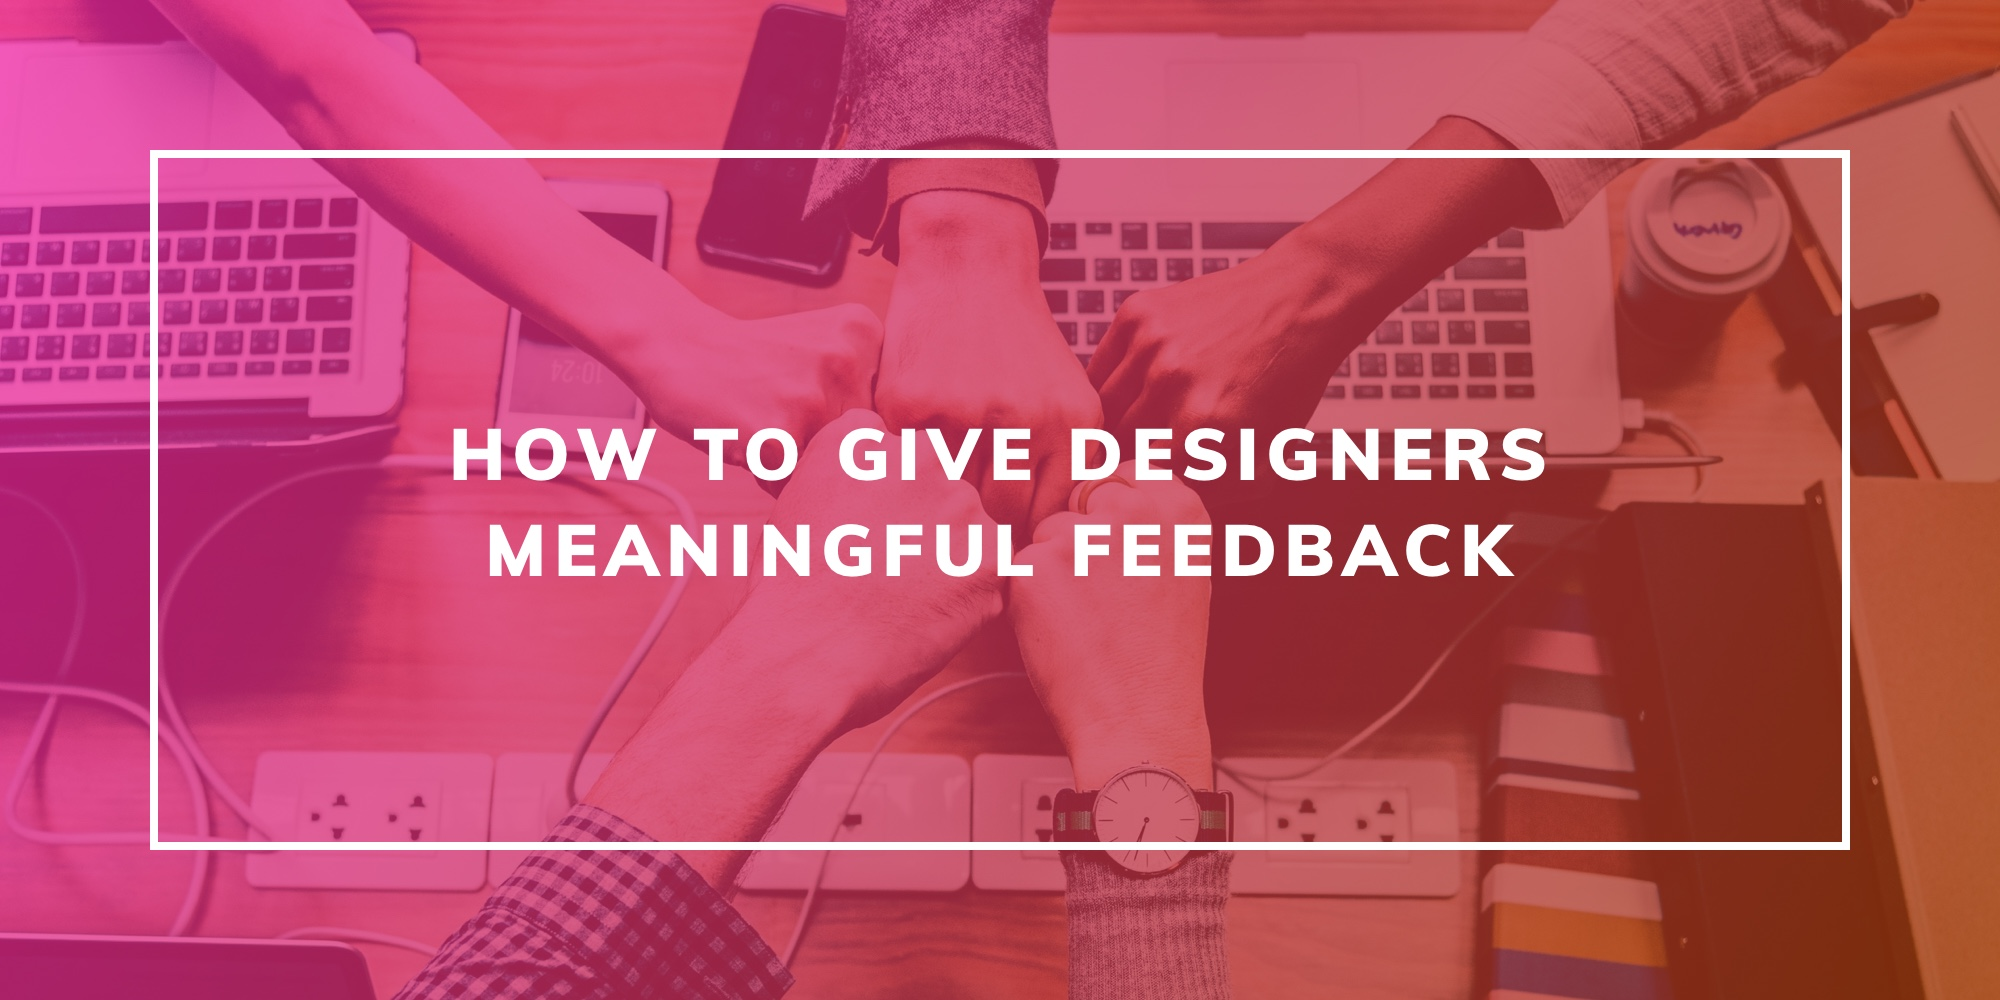 How to give designers meaningful feedback